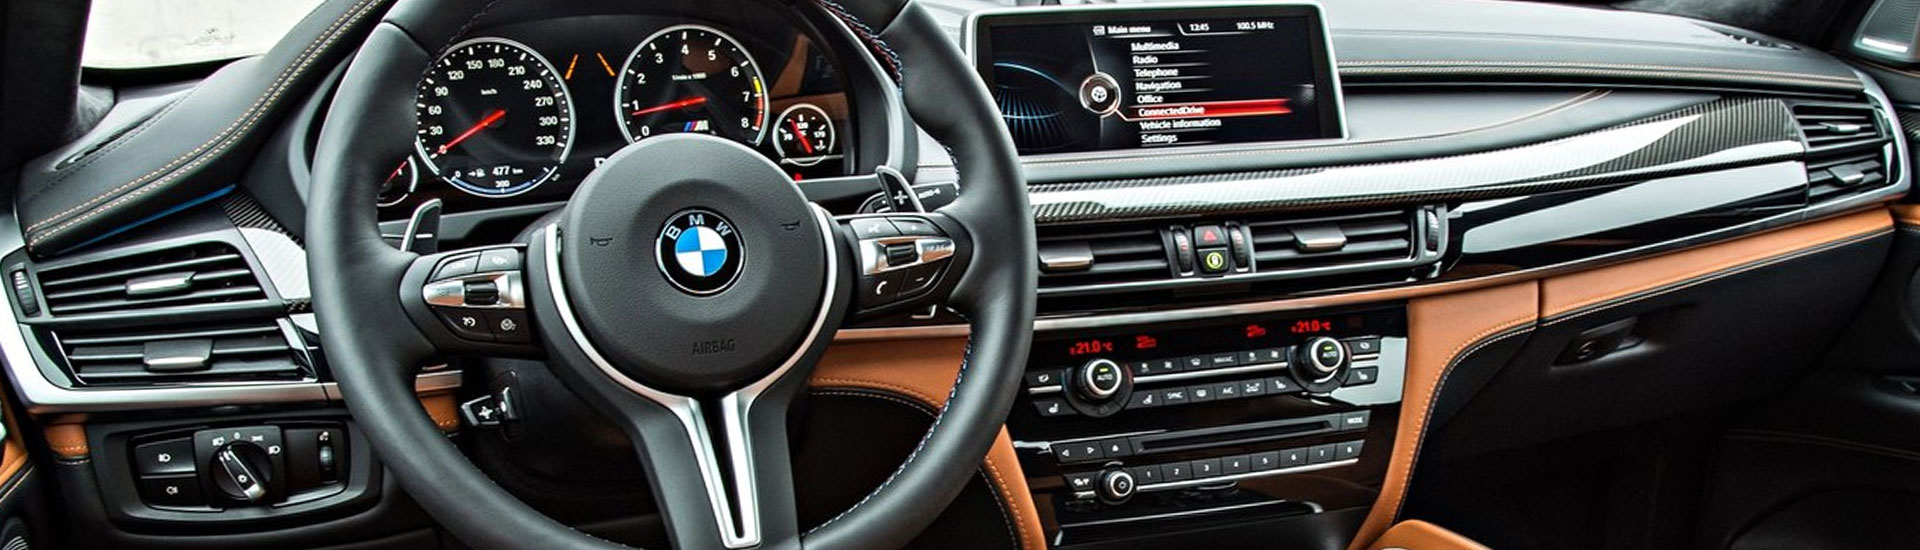 BMW X6 Custom Dash Kits